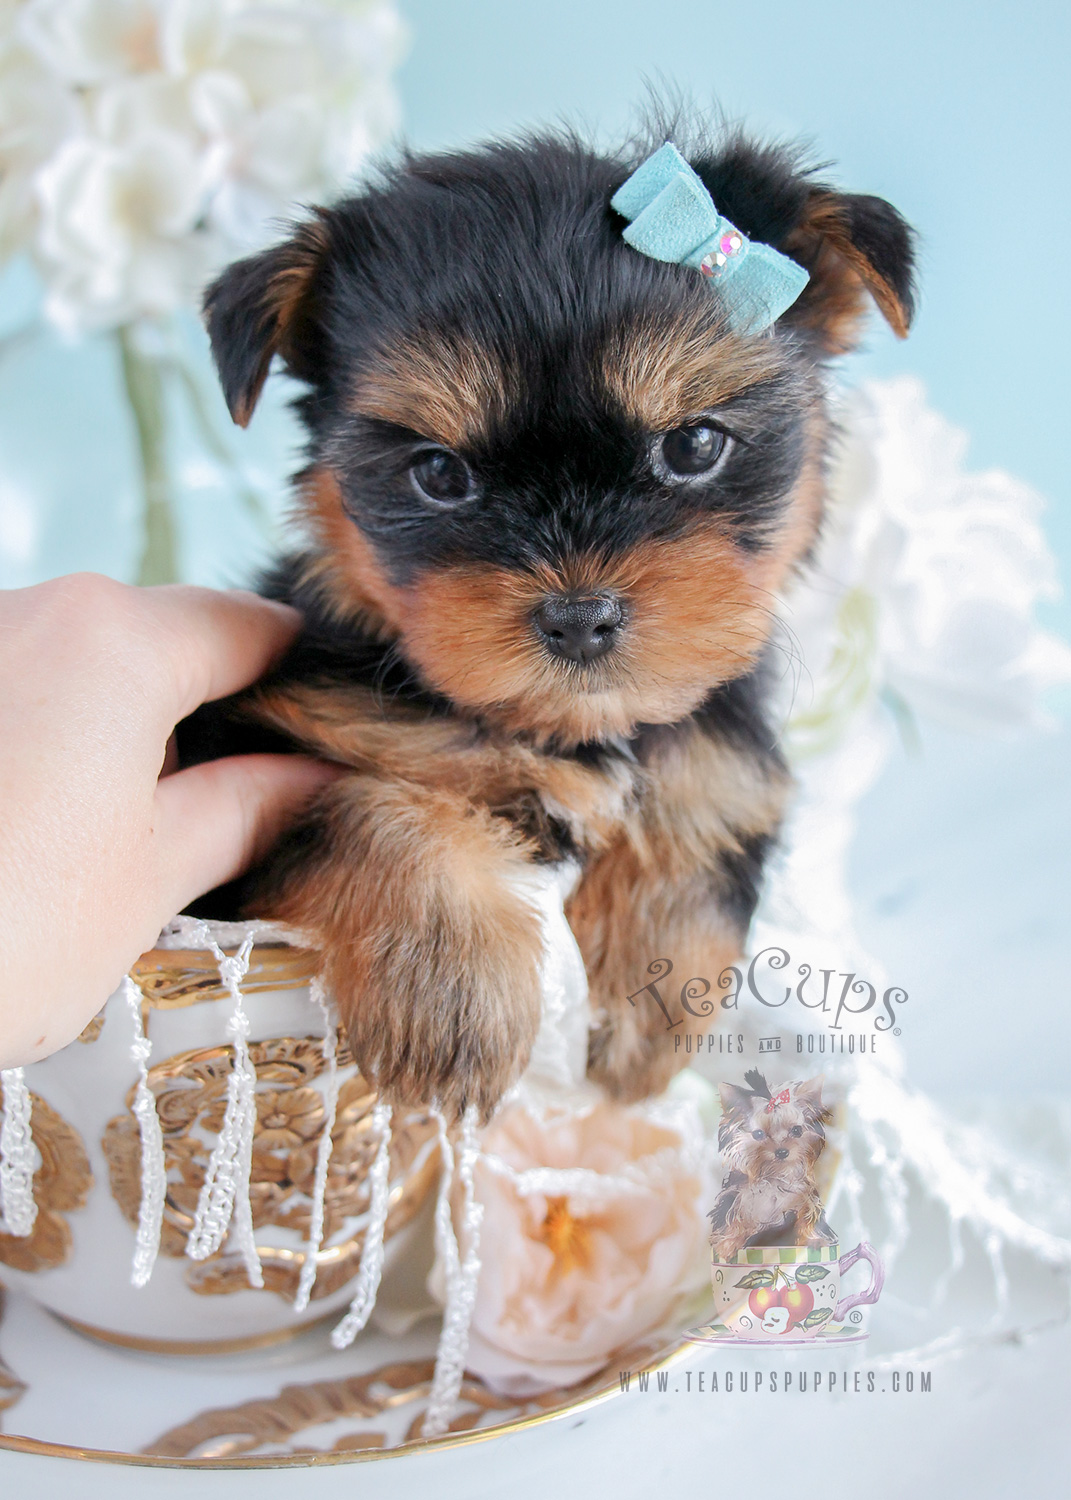 For Sale #274 Teacup Puppies Yorkie Puppy